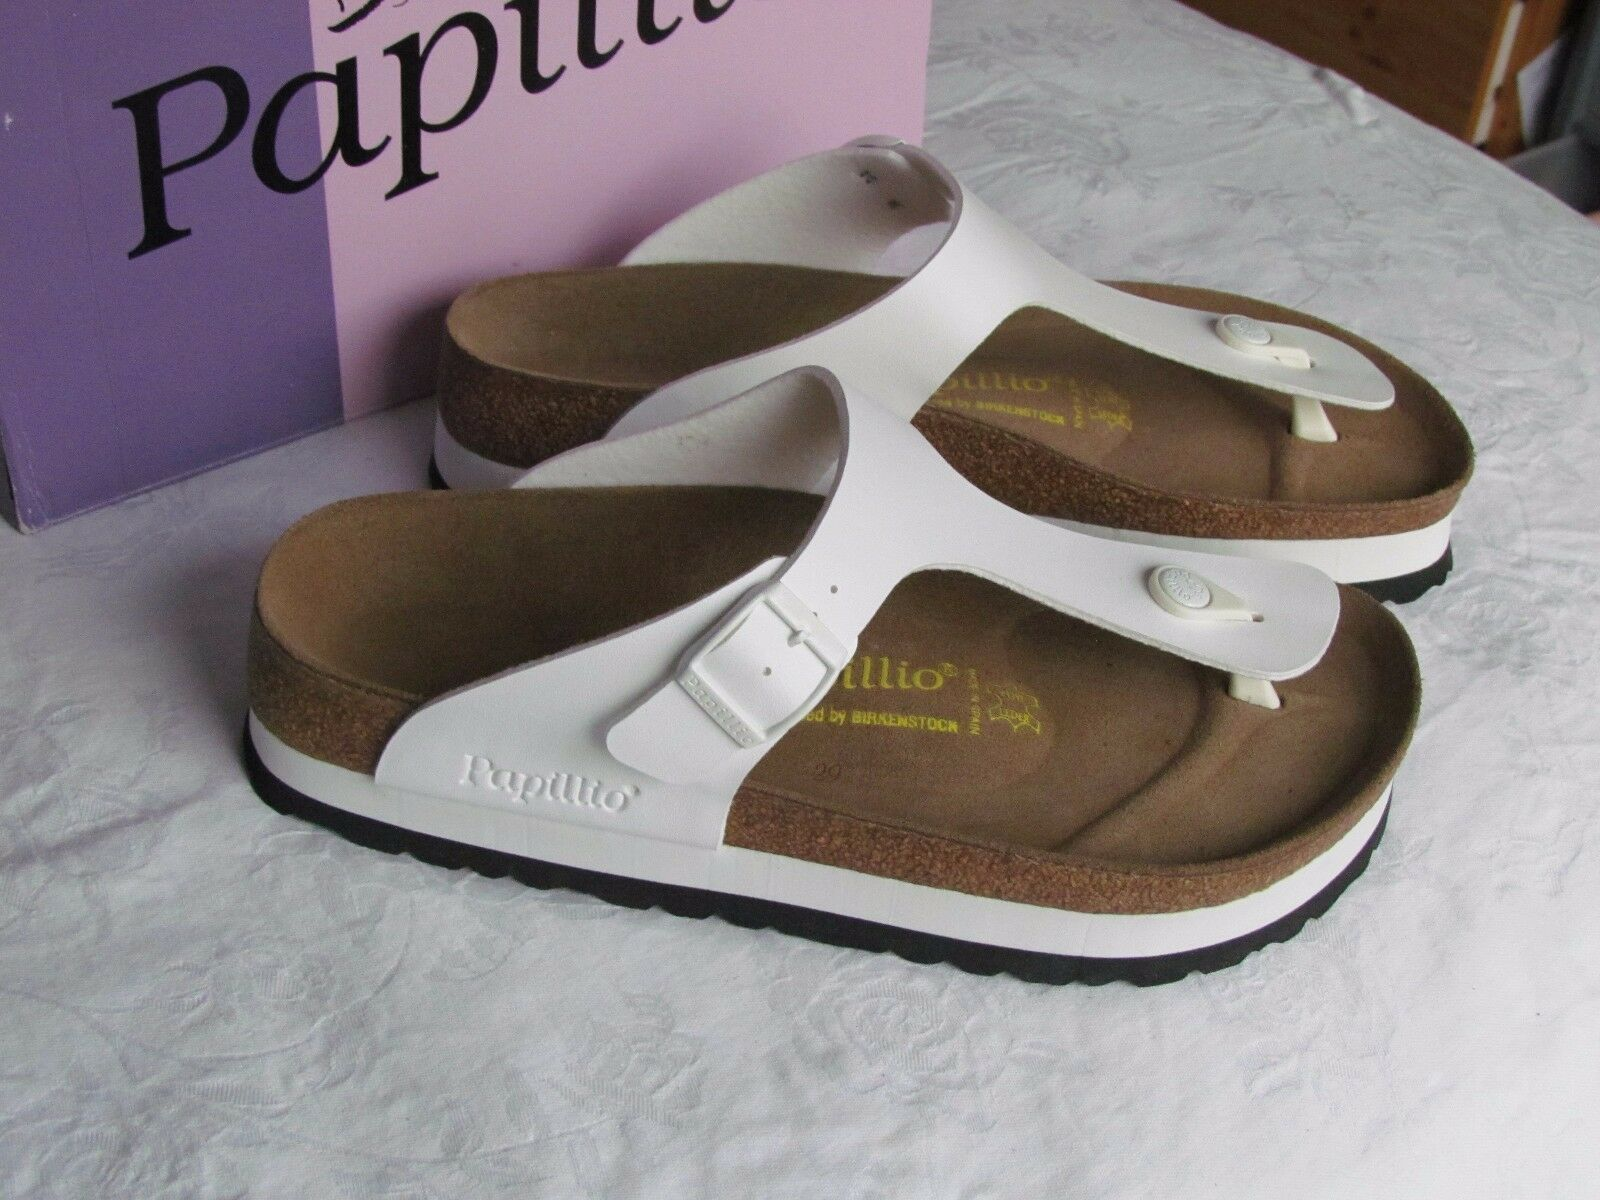 NEW Papillio Gizeh Ladies White White White Platform Toe Post Mules Sandals Size 7.5 EU 41 ad4a7b